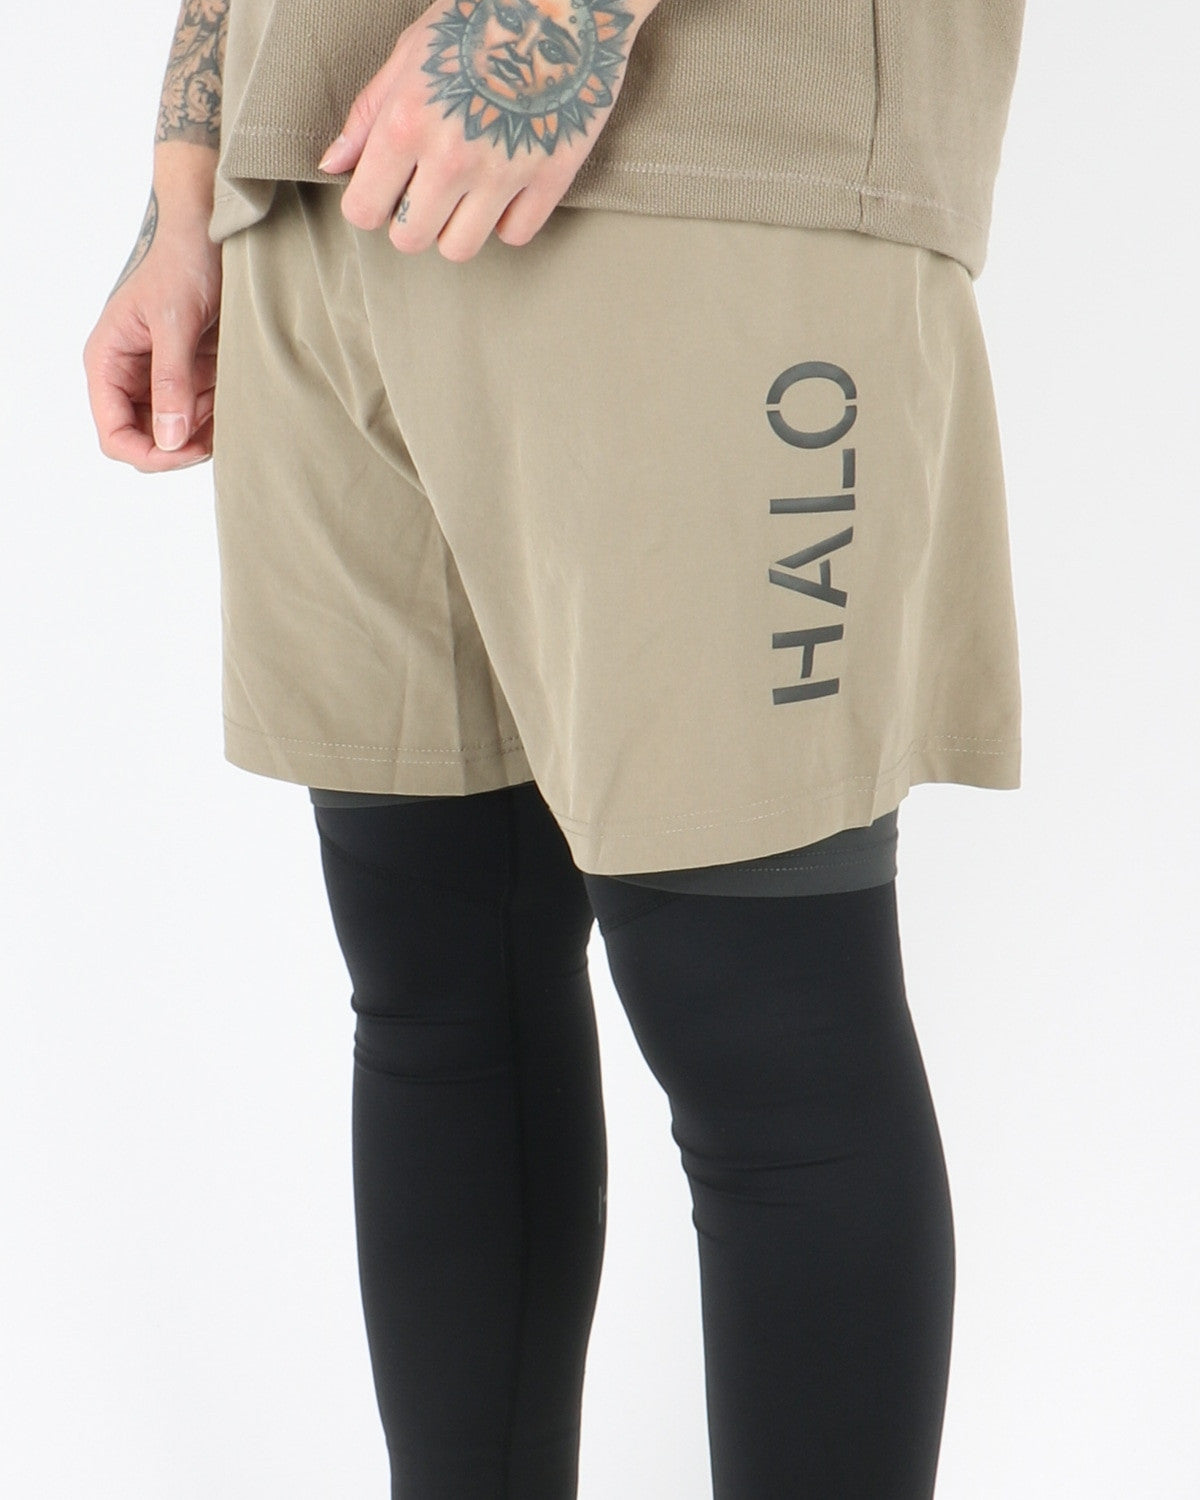 halo newline_endurance_shorts_2in1_light olive_view_2_3